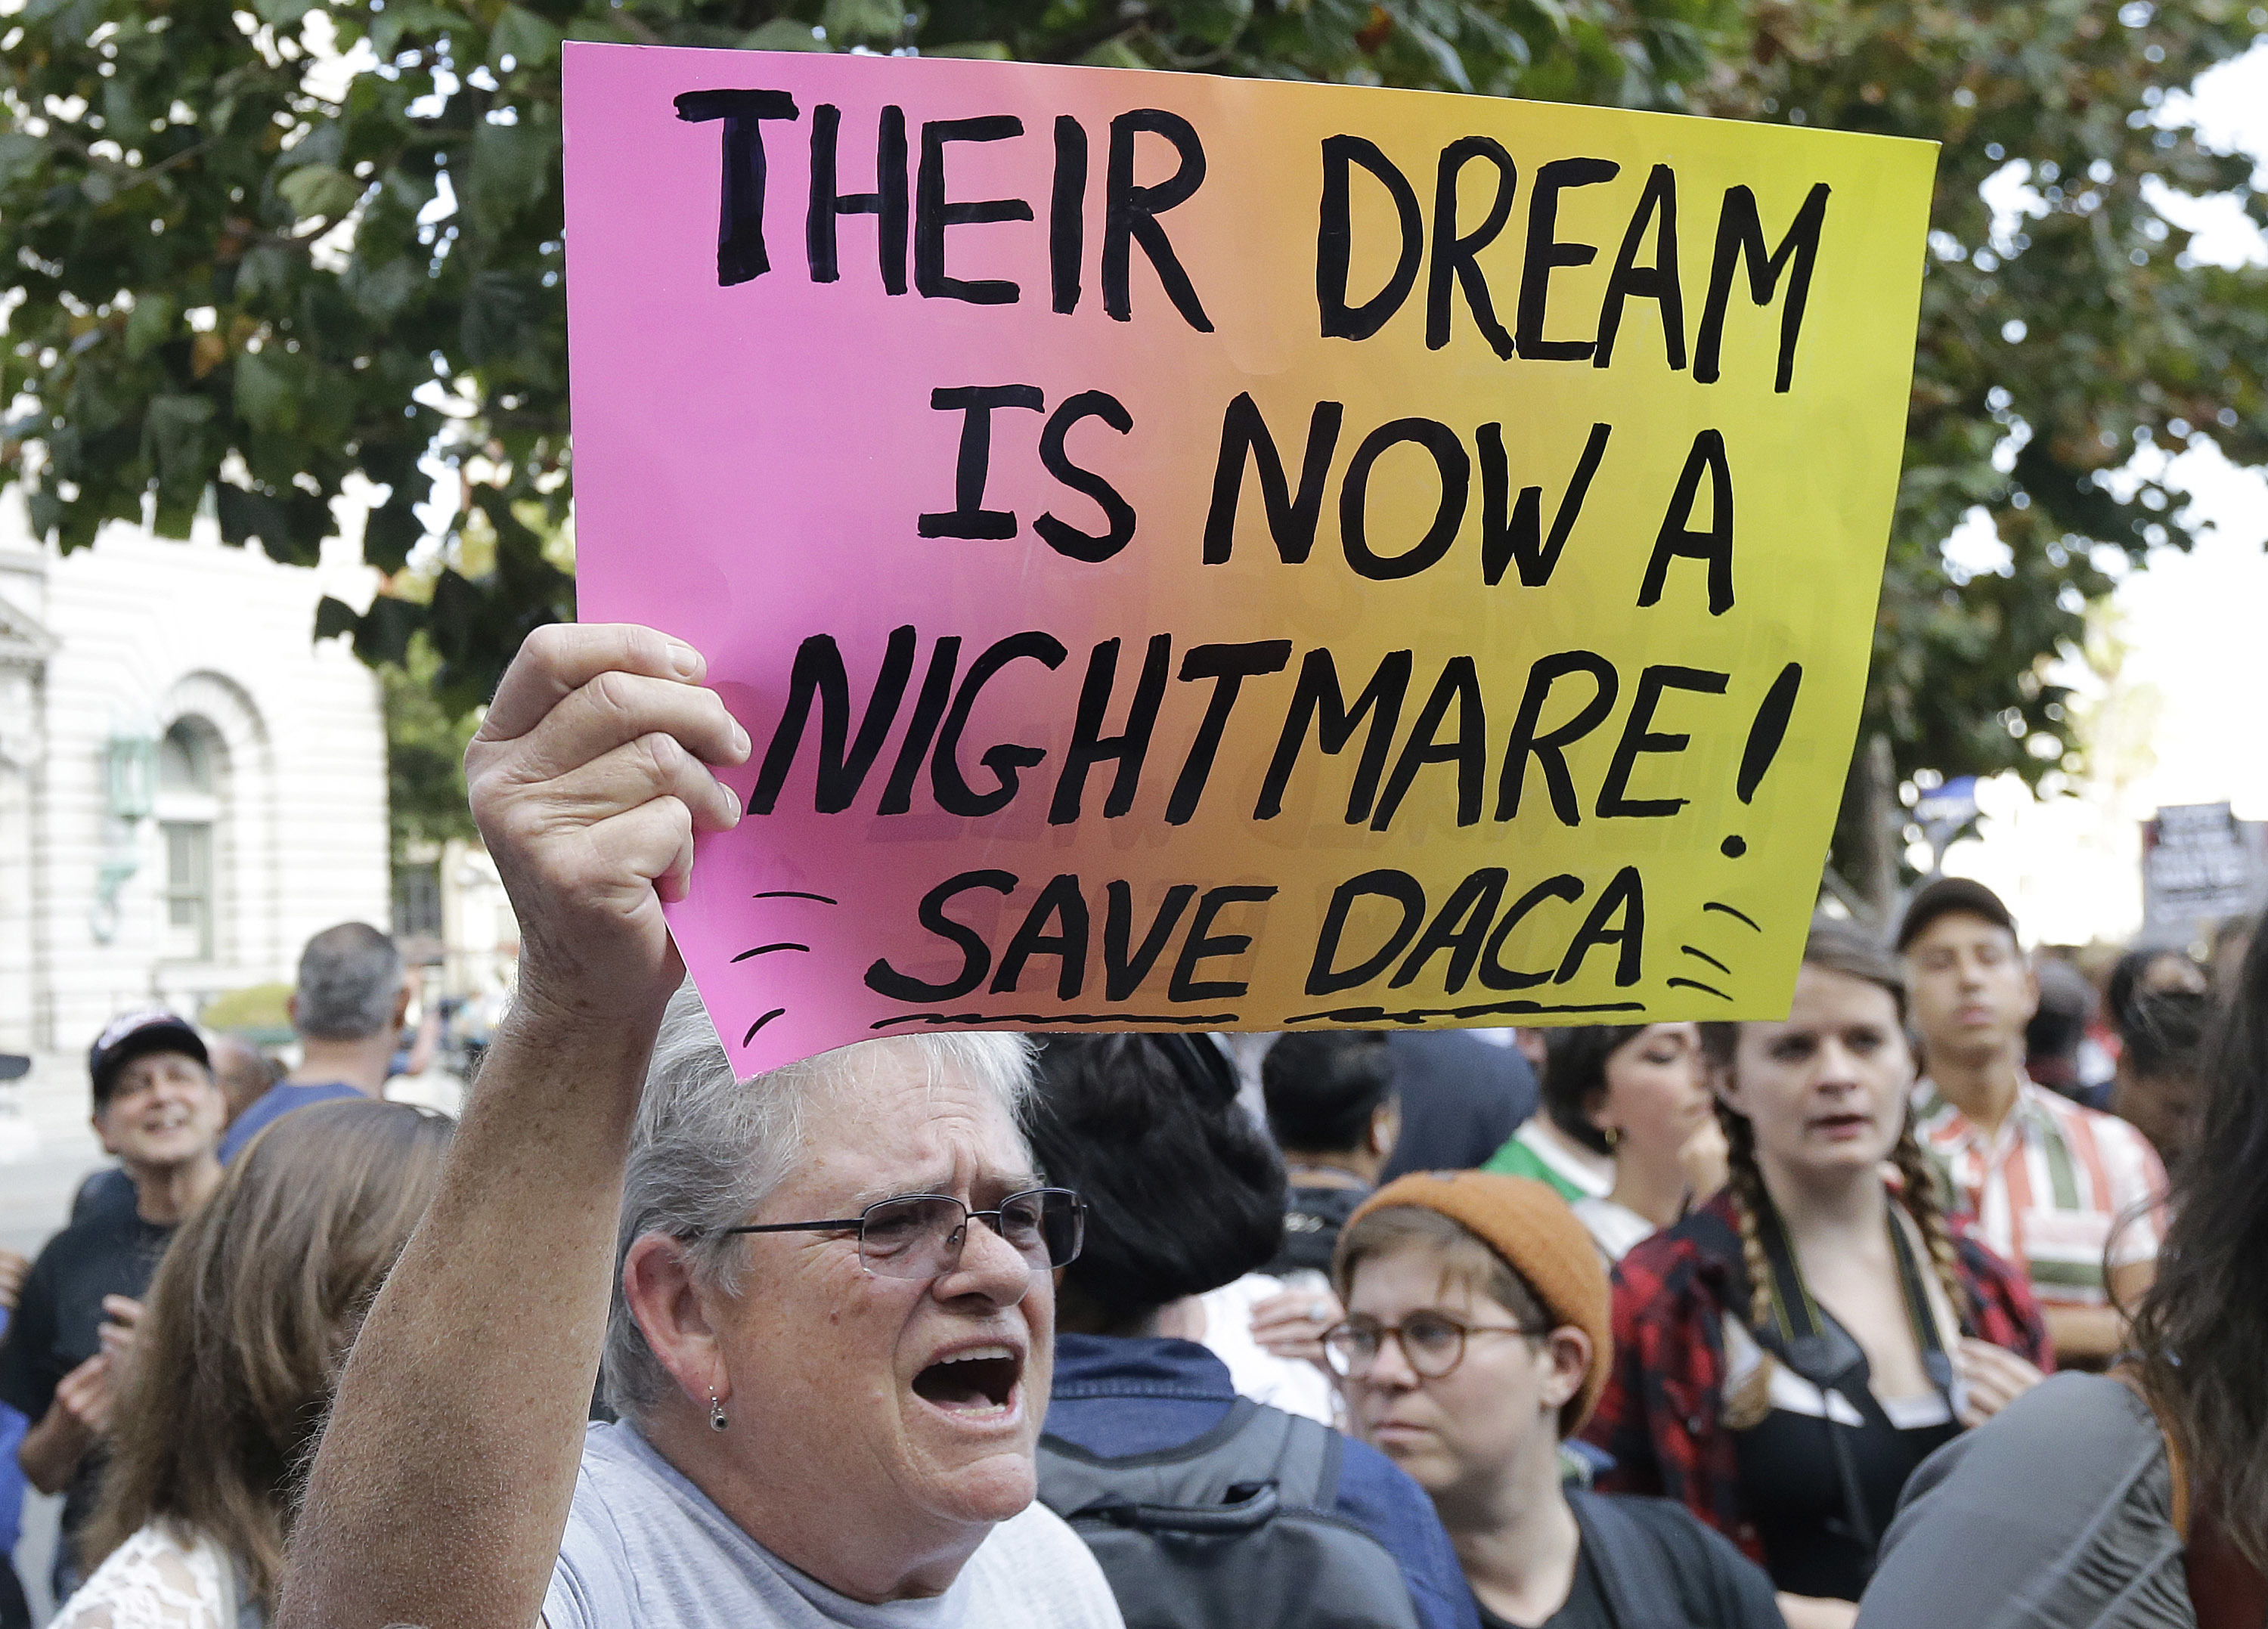 Judy Weatherly, a supporter of the Deferred Action for Childhood Arrivals (DACA), holds up a sign during a protest outside of the Federal Building in San Francisco, Sept. 5, 2017.